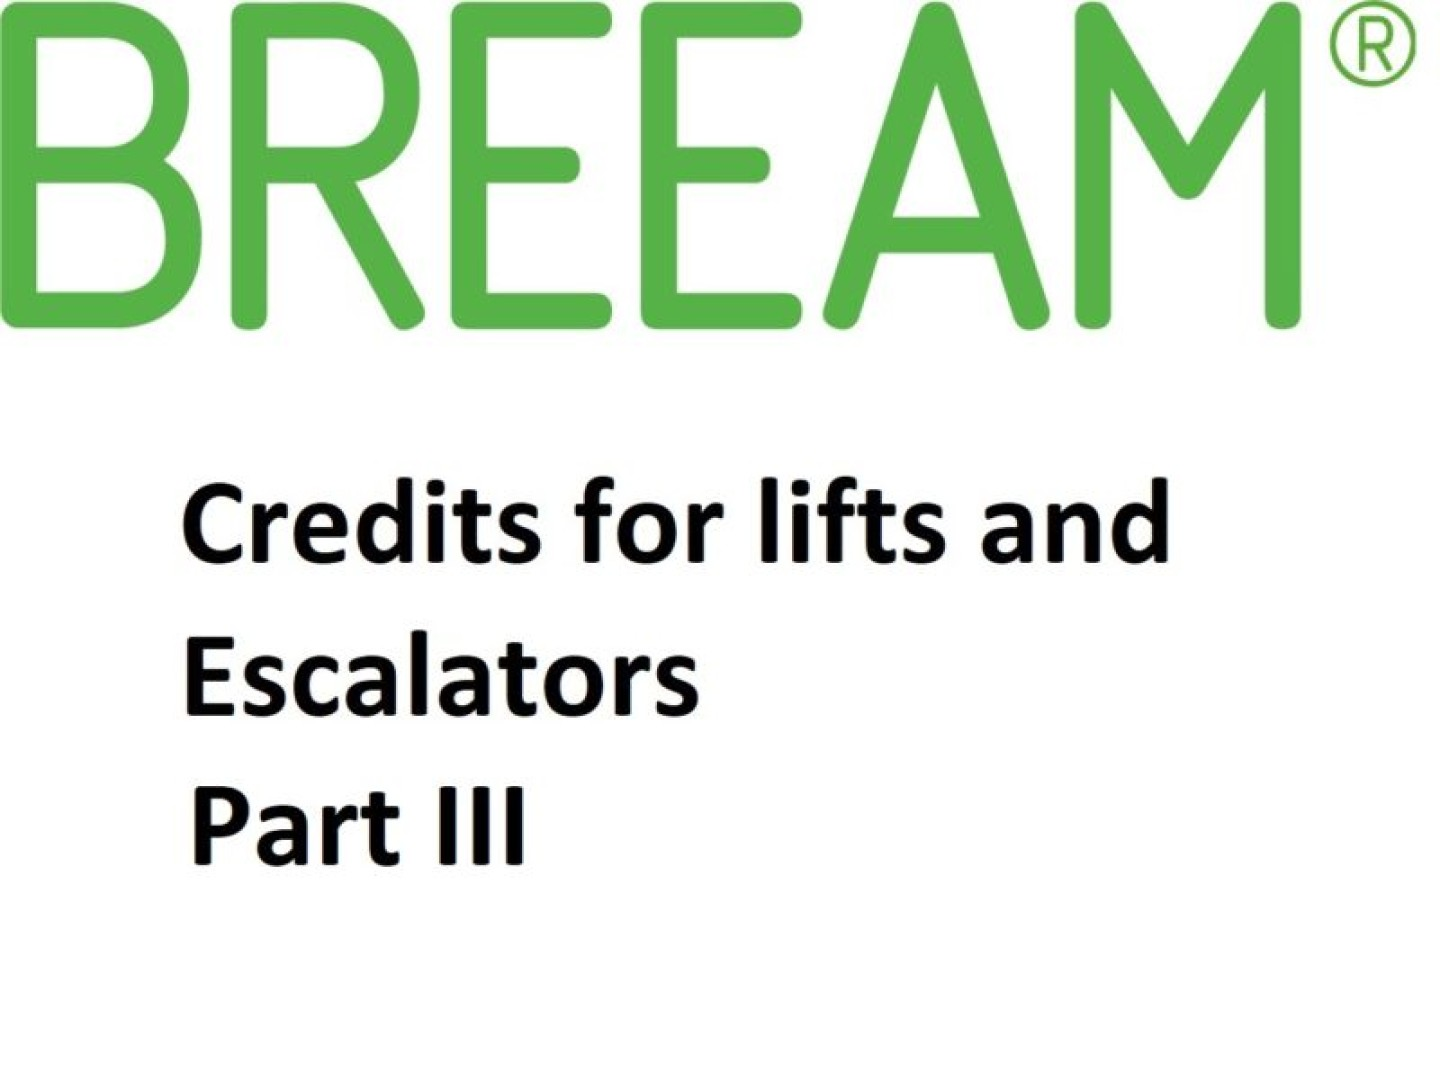 BREEAM Credits for Lifts Part III